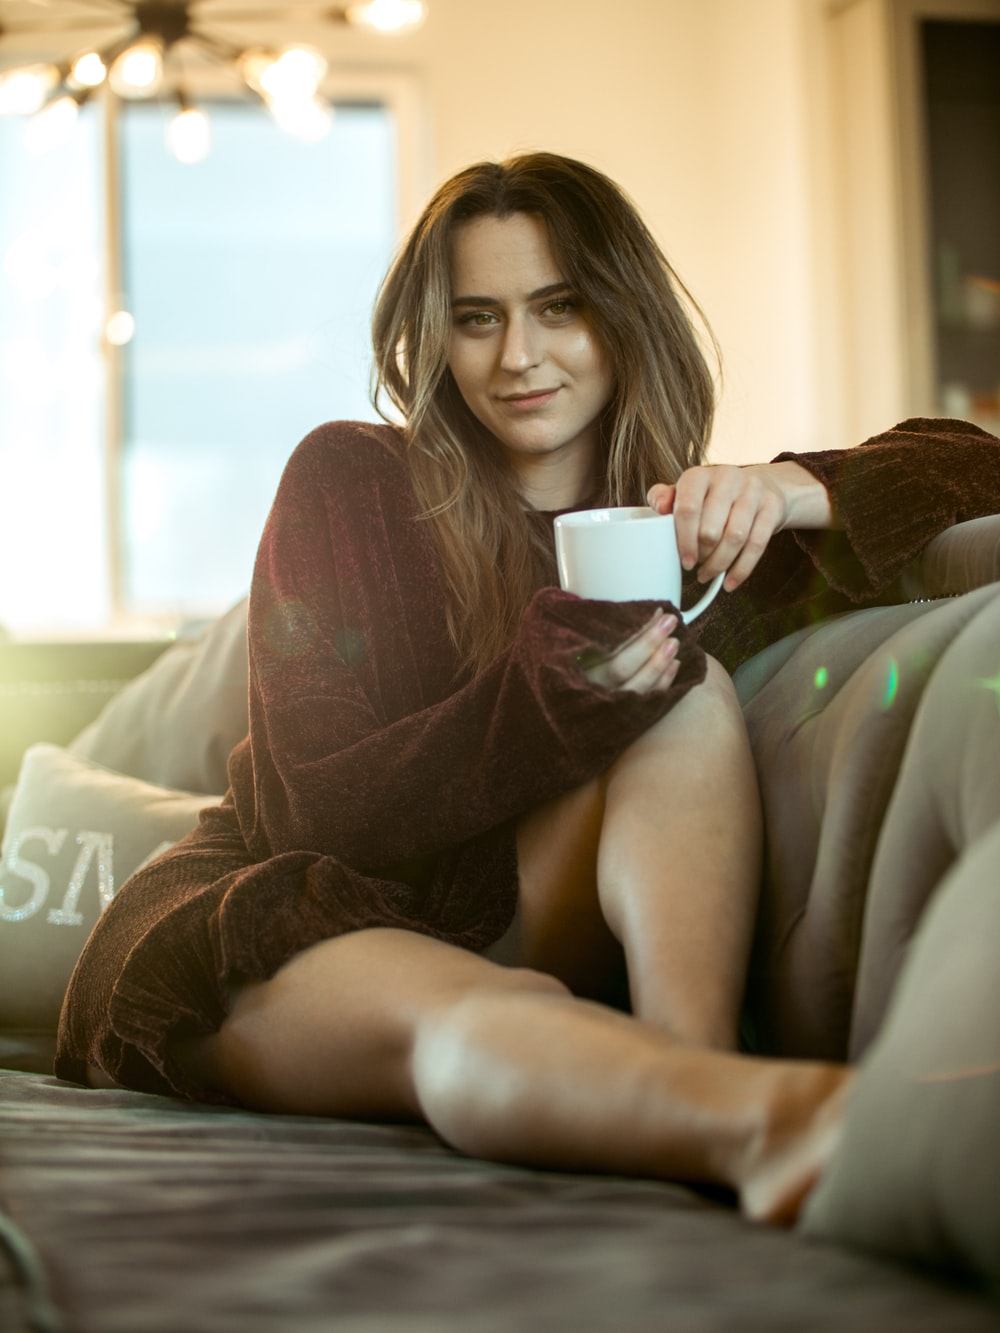 woman wearing maroon sweater sitting on sofa